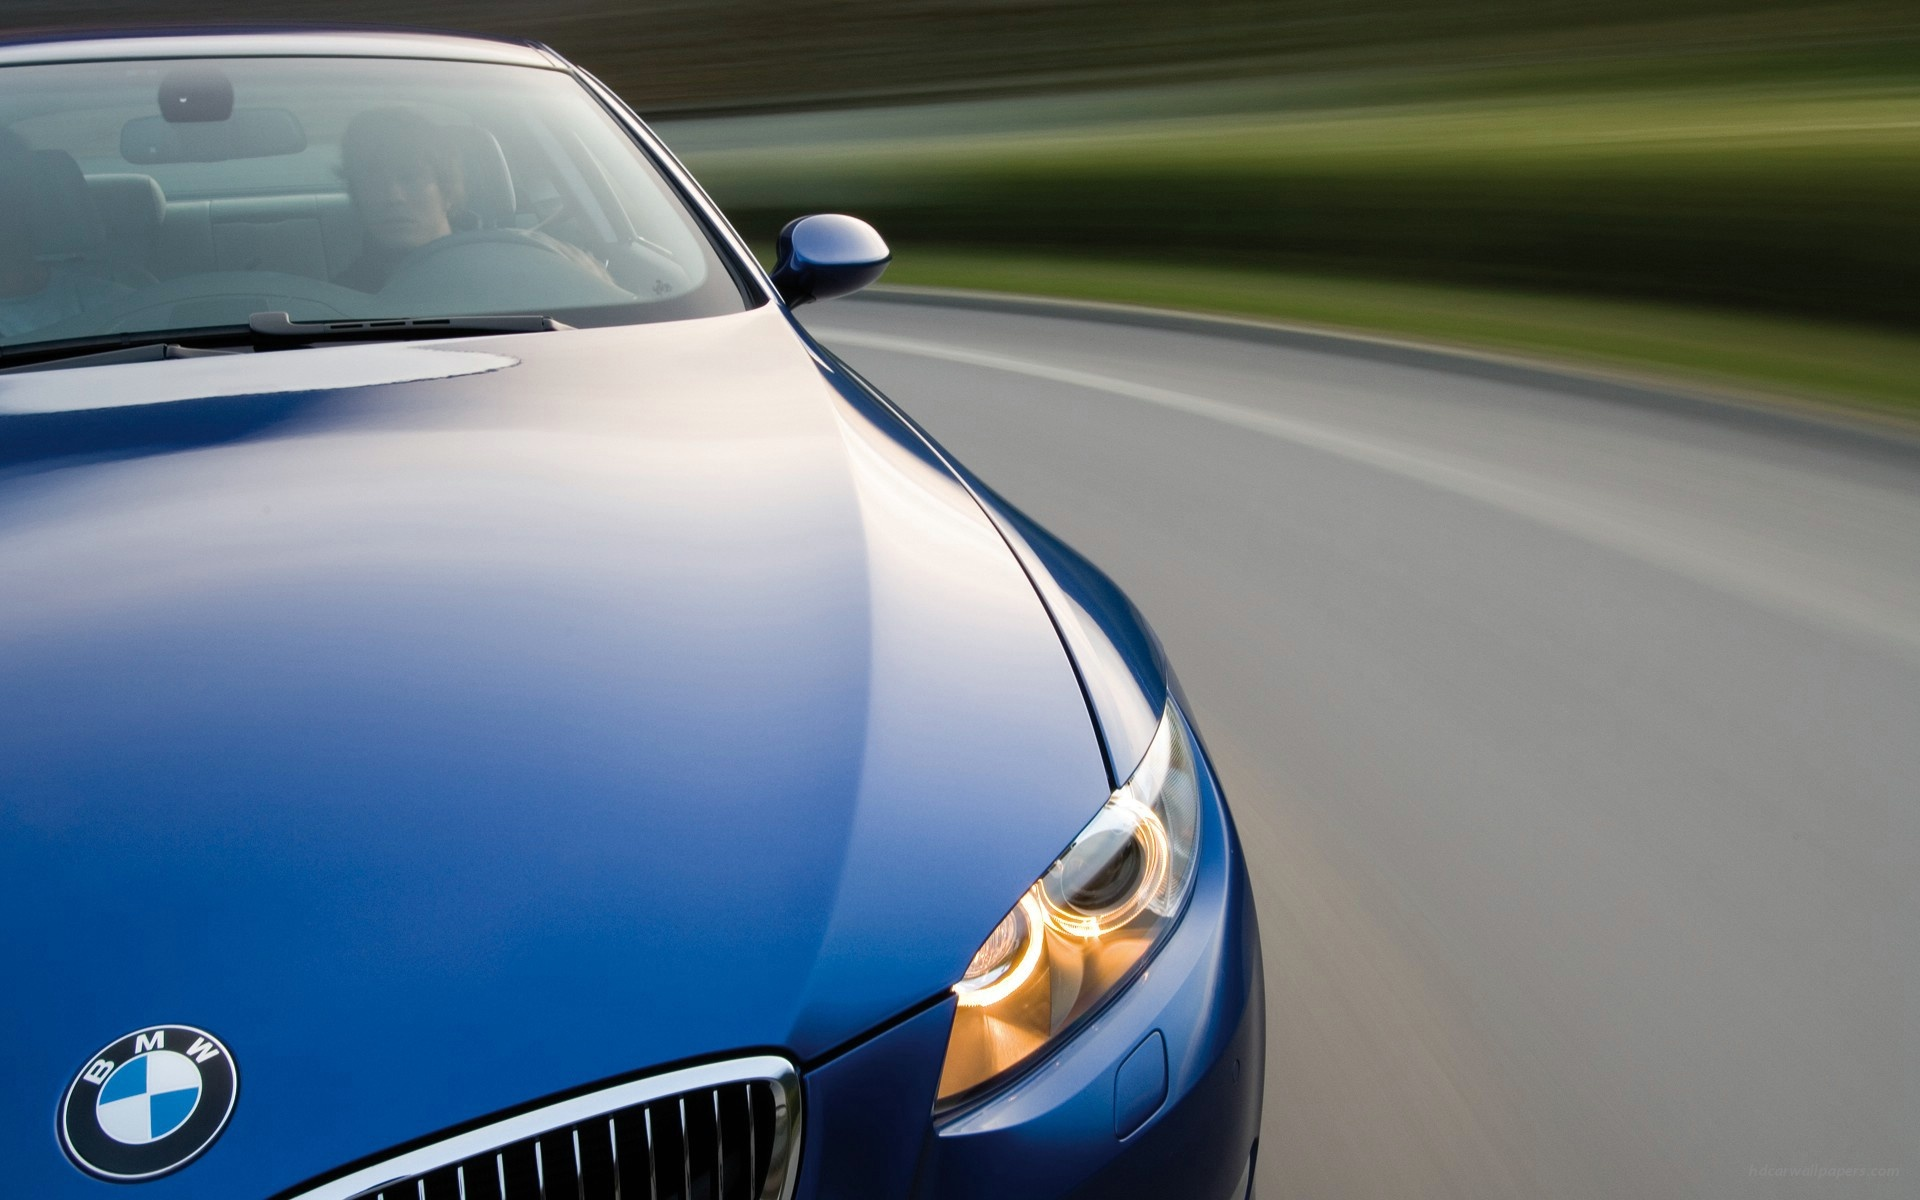 2006 Bmw 3 Series Coupe 3 Wallpapers In Jpg Format For Free Download